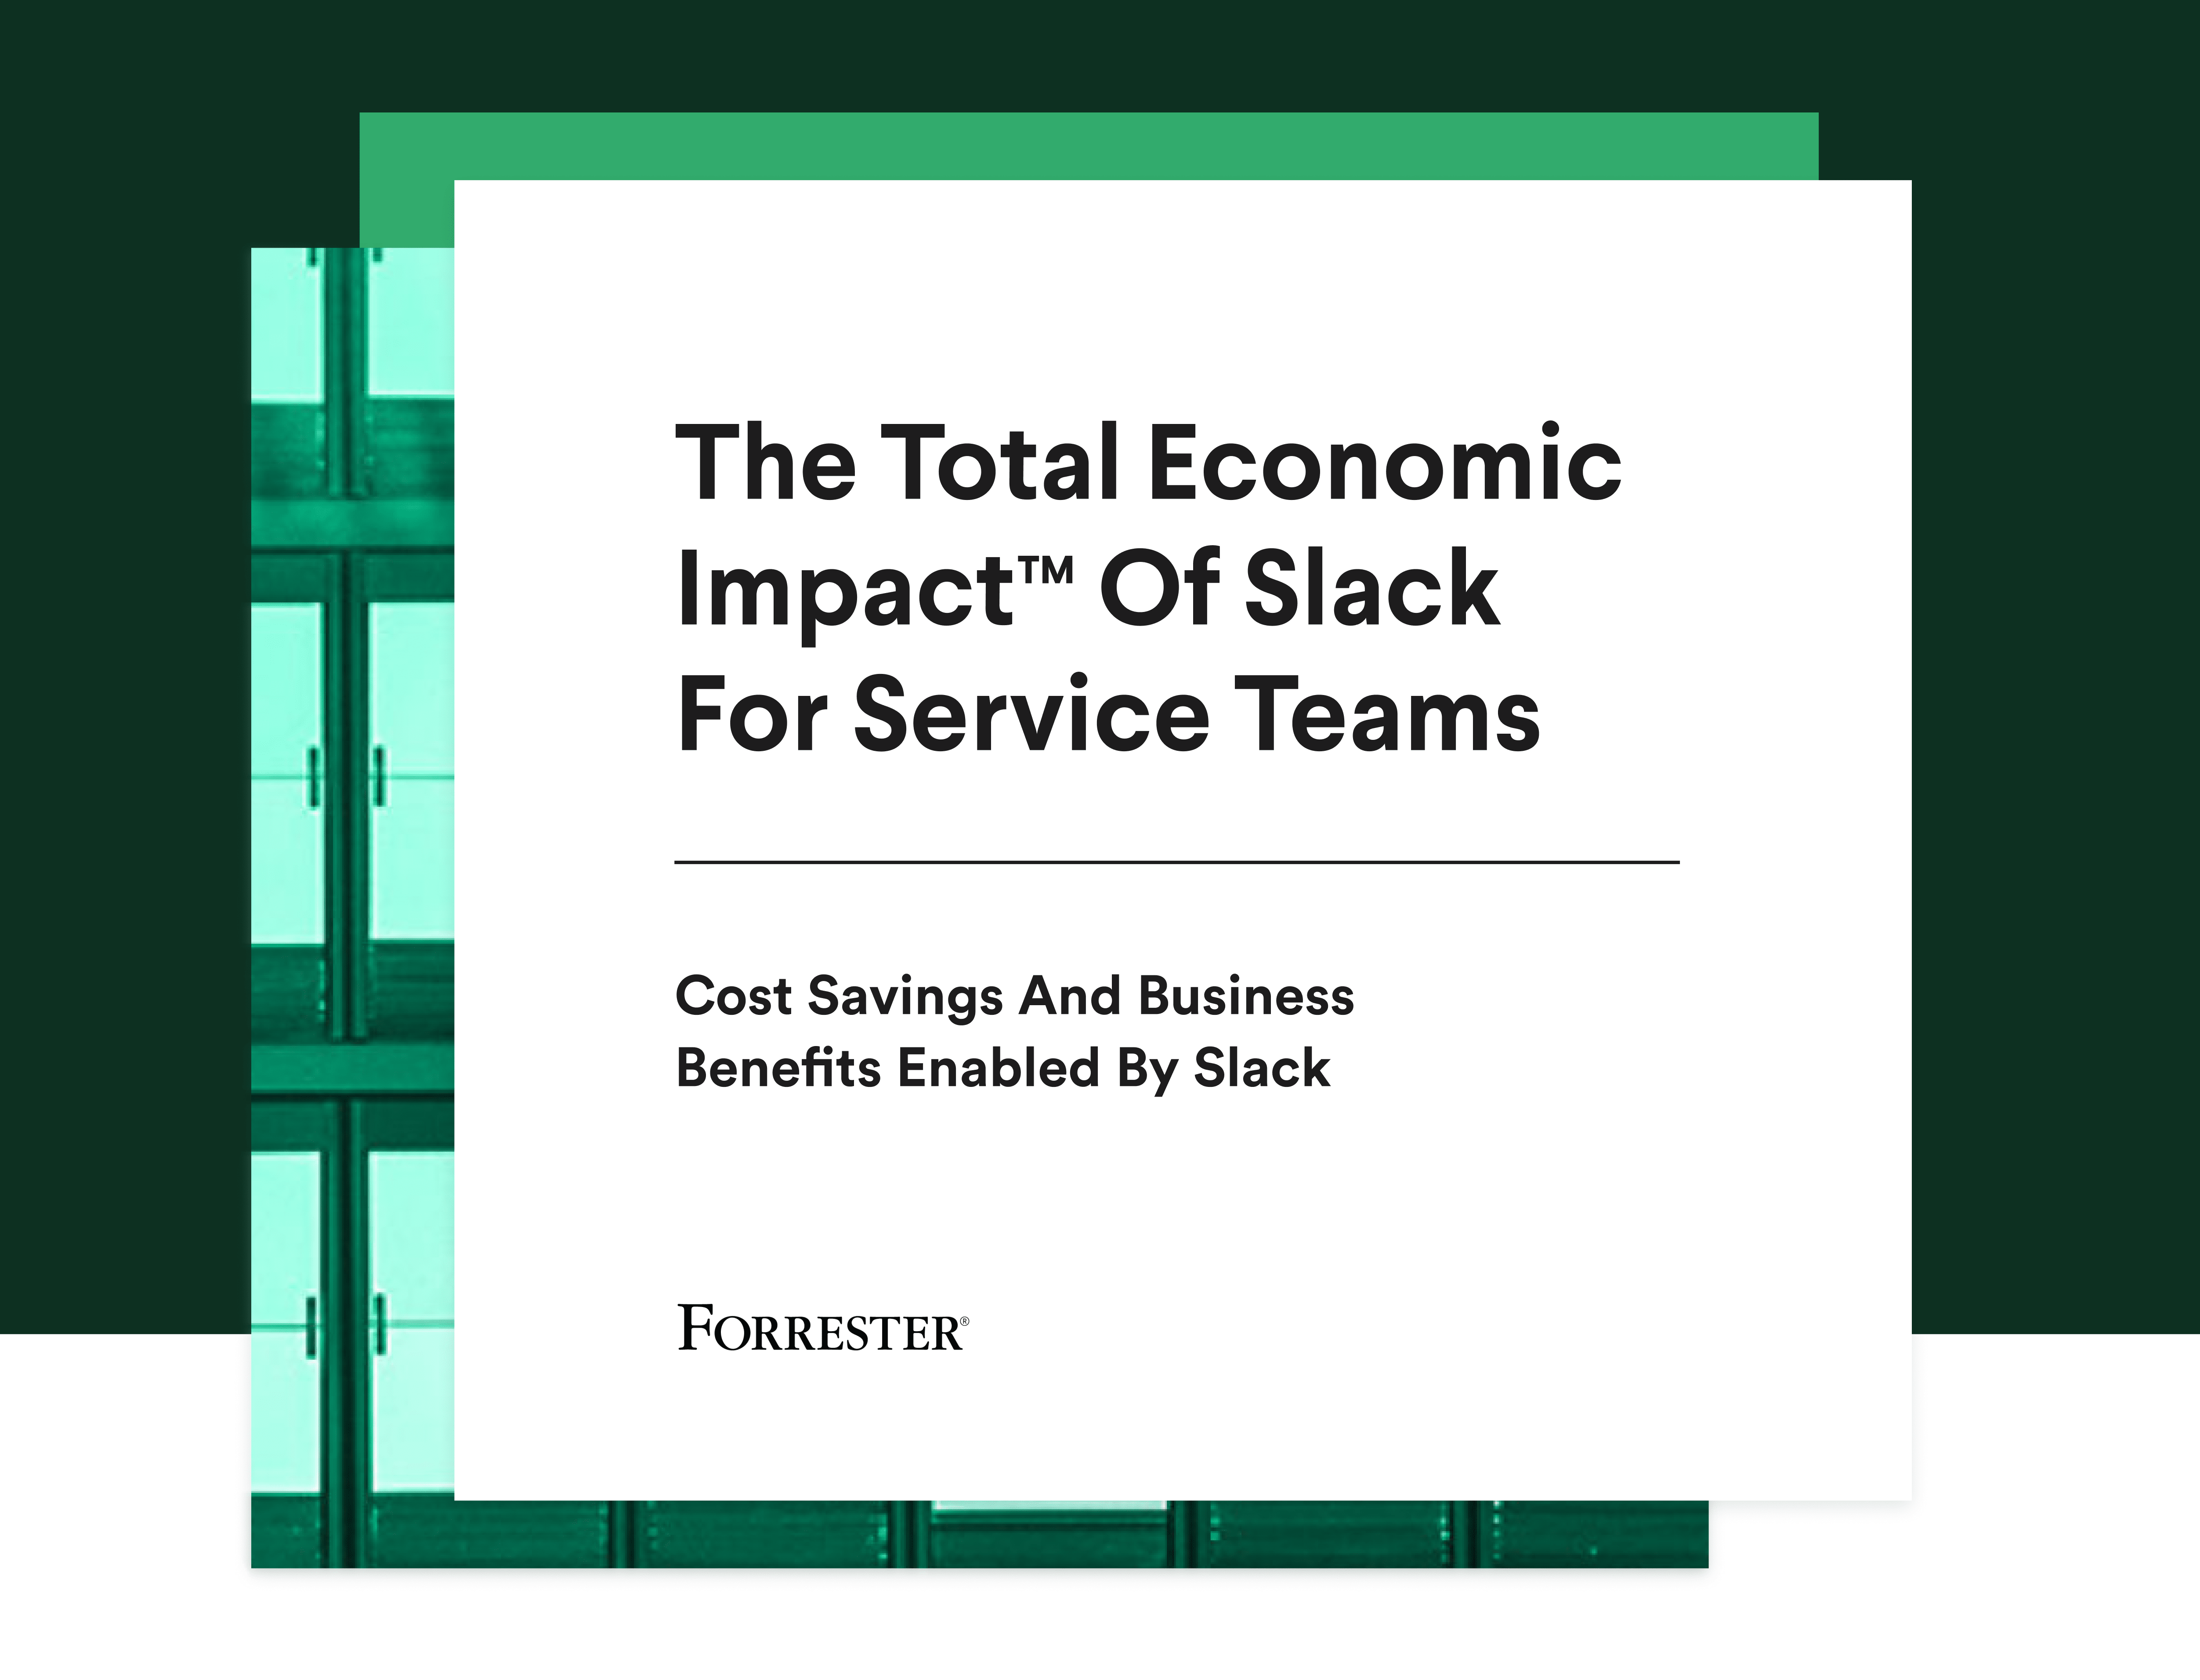 Cover of The Total Economic Impact of Slack For Service Teams study